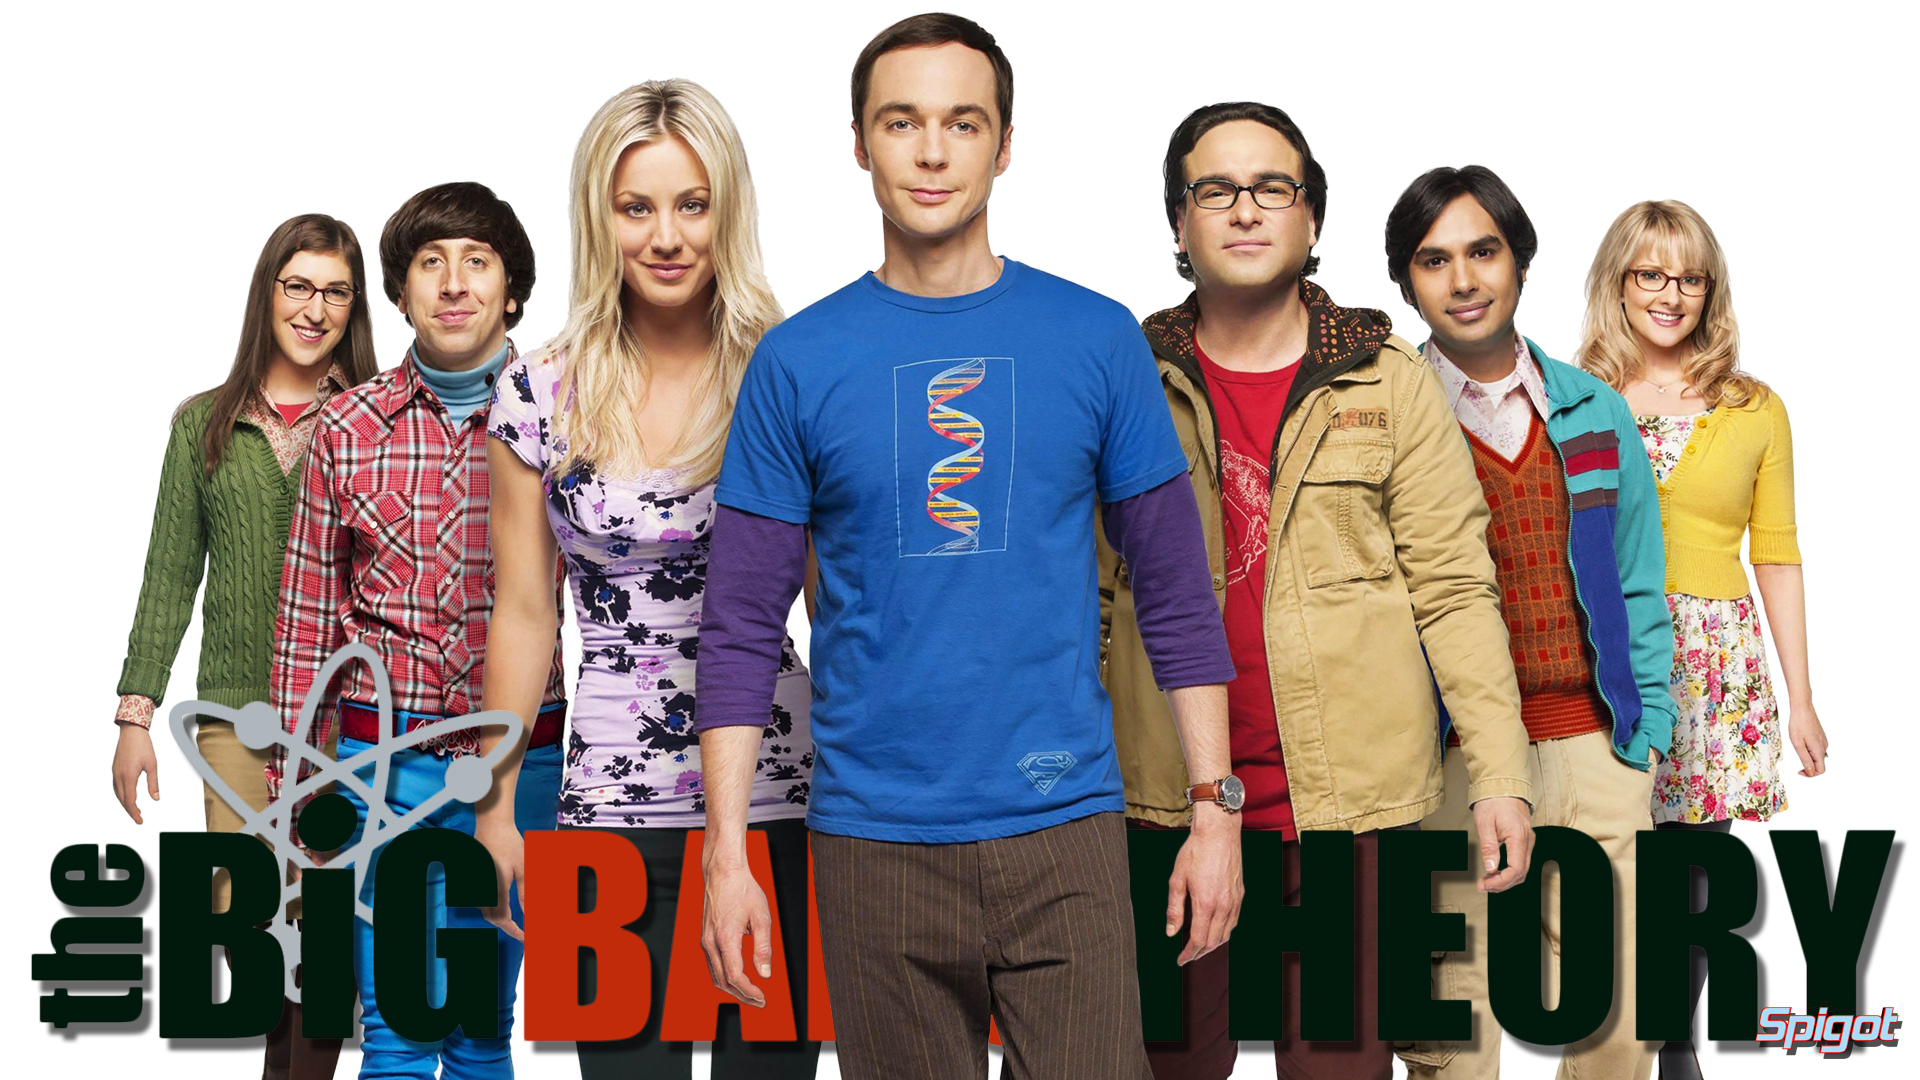 Big Bang Theory Bettwäsche Before And After Finals As Told By The Big Bang Theory Cast